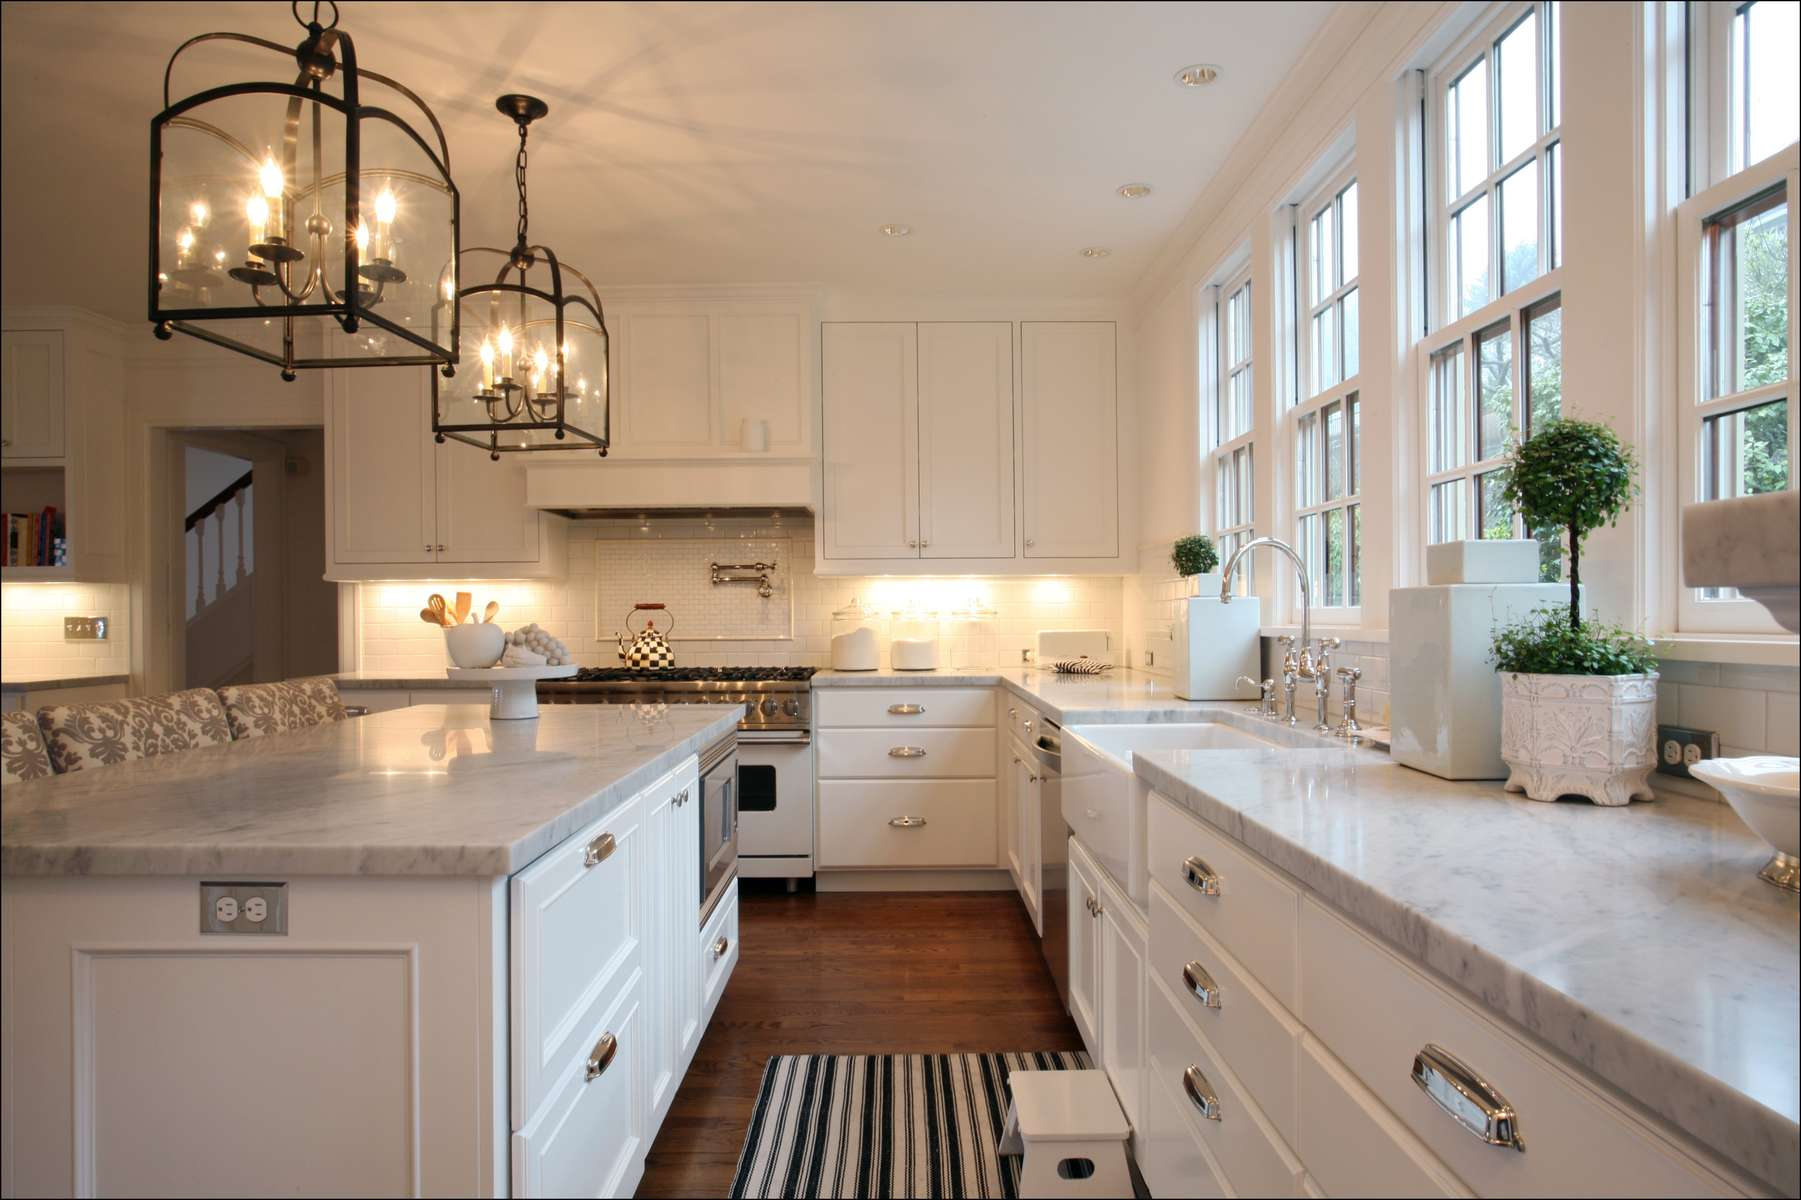 jandavid s kitchen 1 colonial kitchen sink IMAGE GALLERIES Residential Gallery Whole House Colonial Revival jandavid s kitchen 1